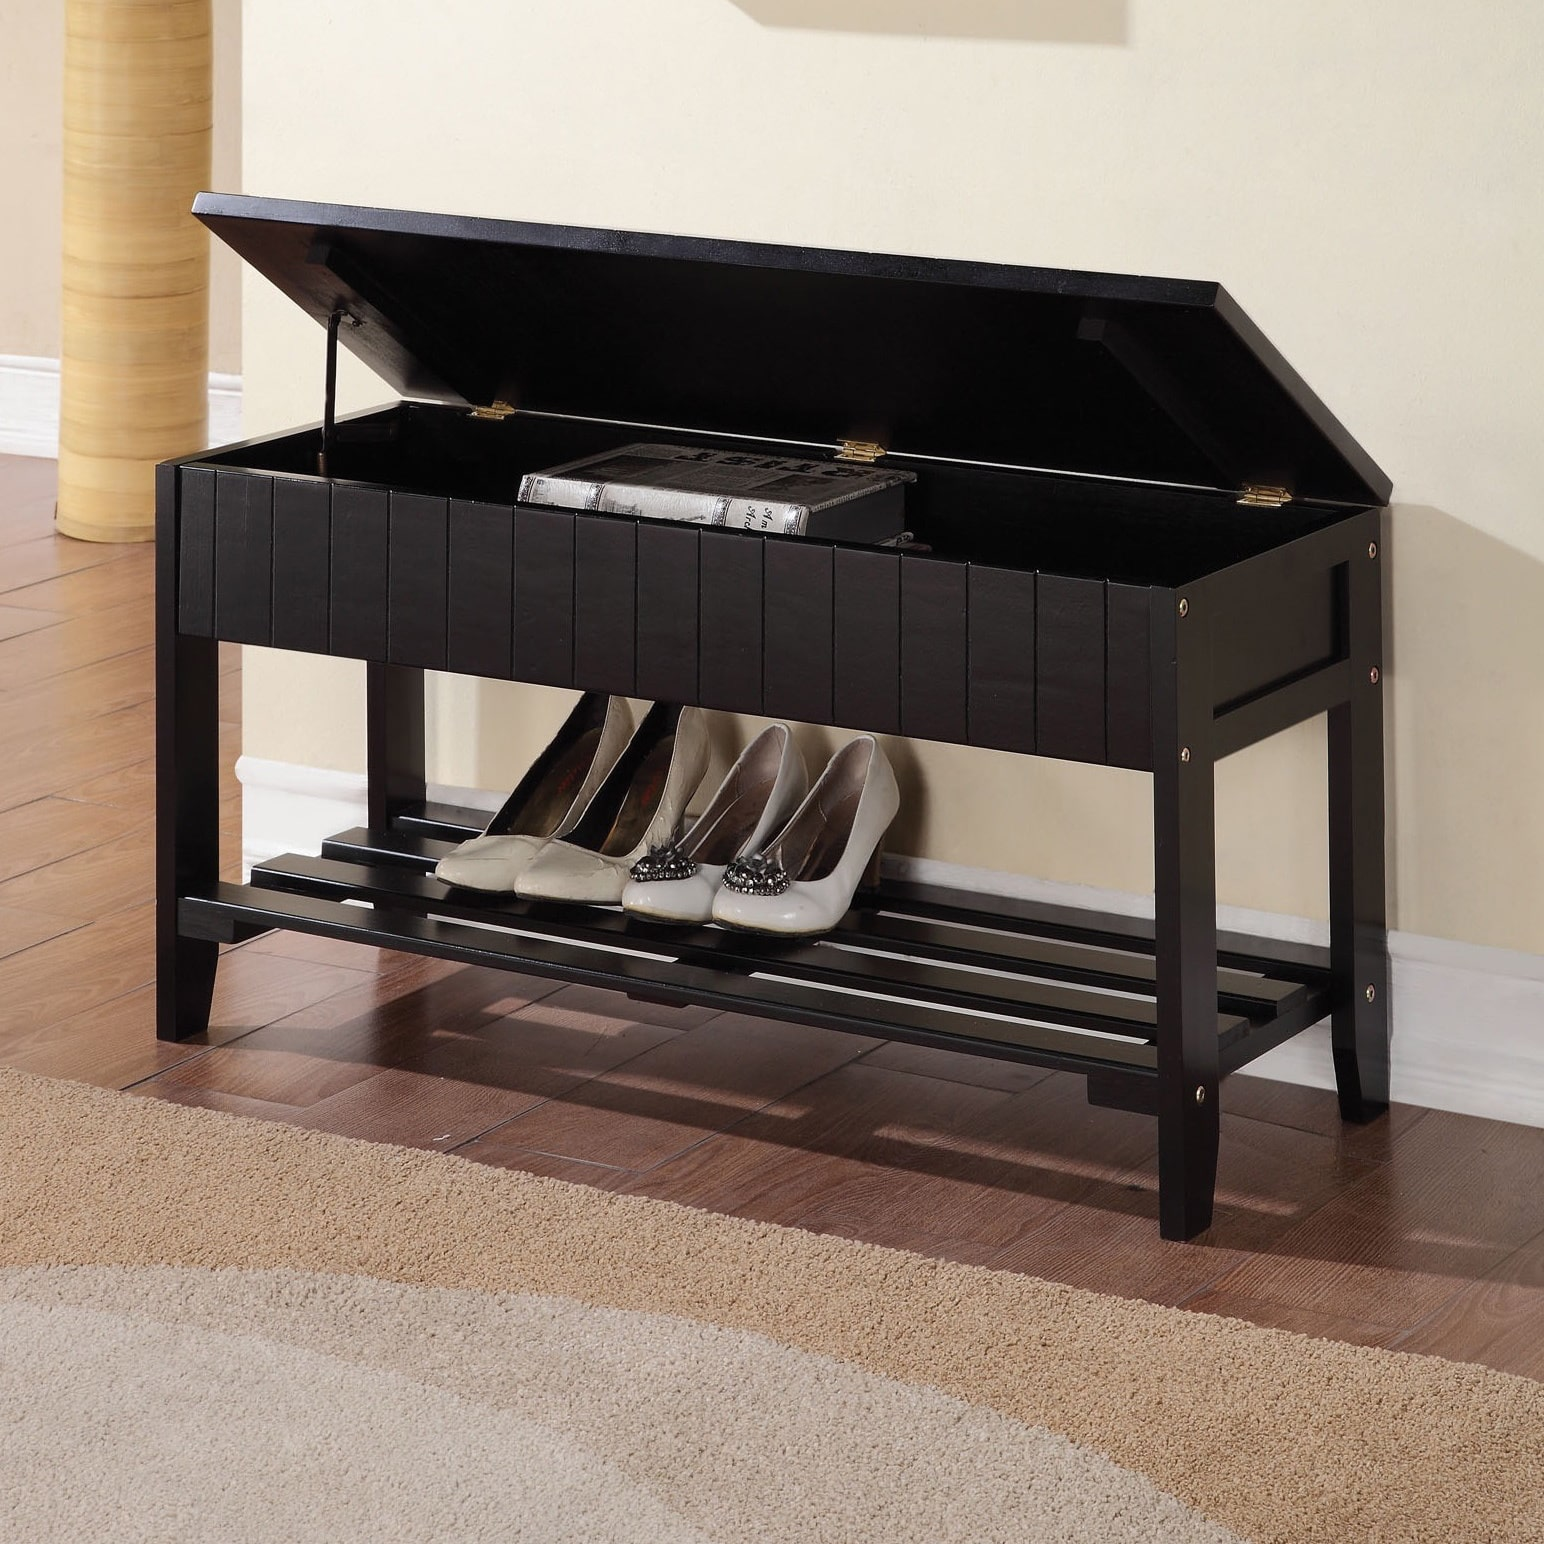 OH Black Solid Wood Storage Bench with Shoe Shelf